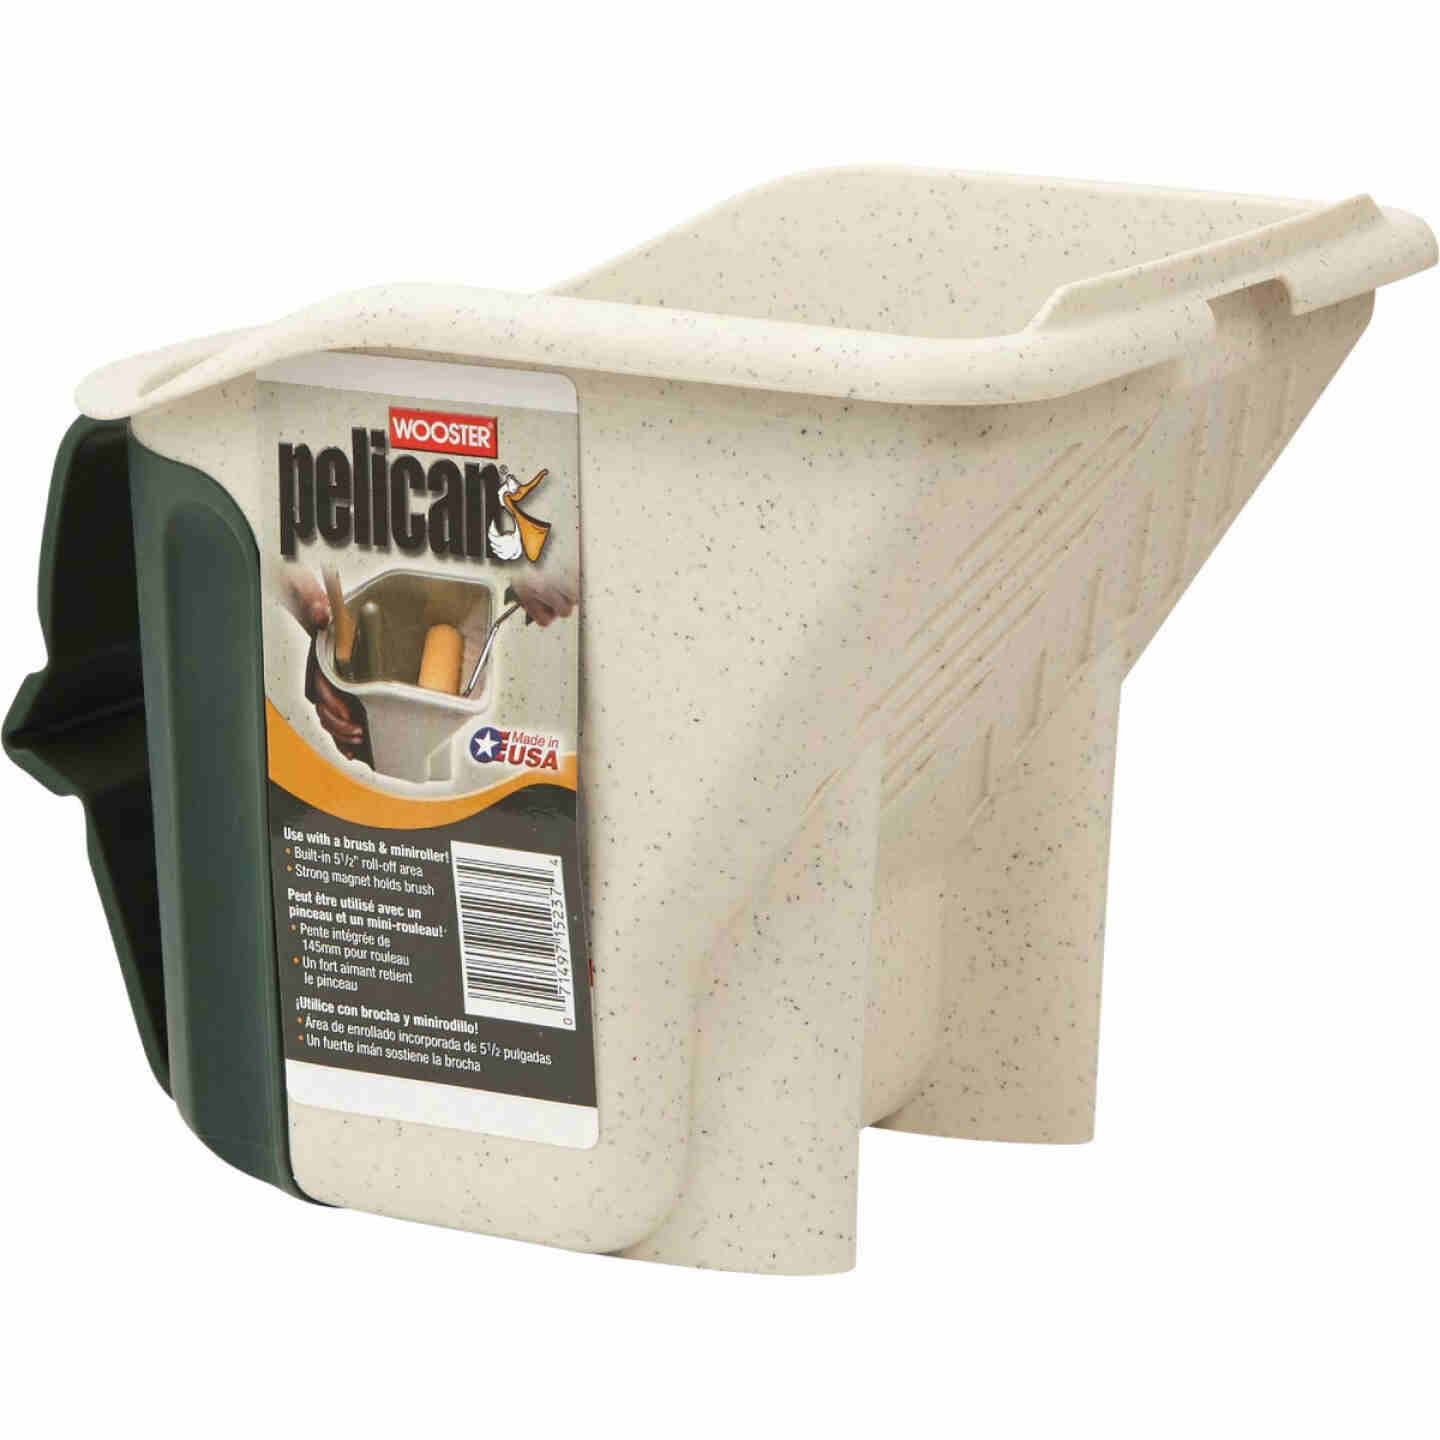 Wooster Pelican 1 Qt. Green & White Painter's Bucket with Magnetic Brush Holder Image 1